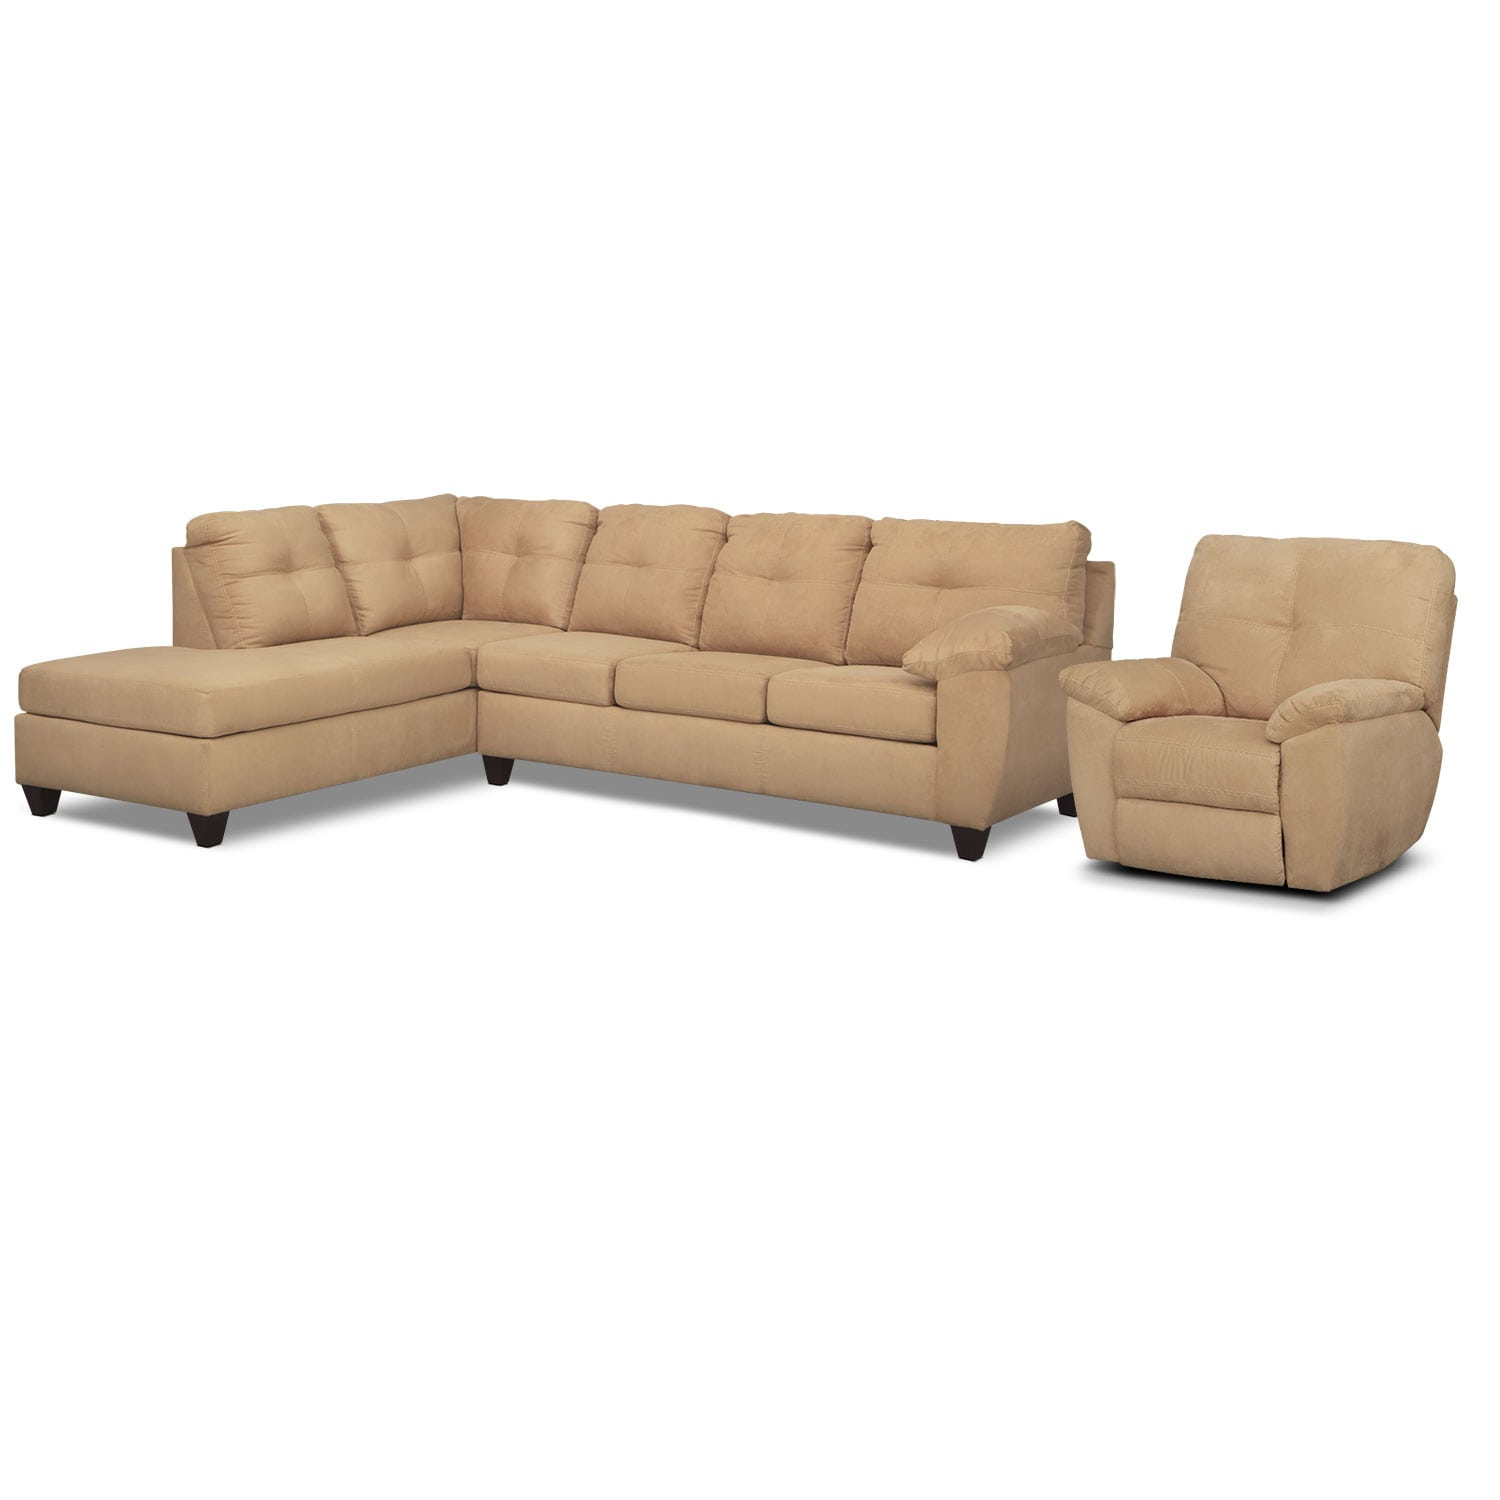 Living Room Furniture - Rialto Camel 2 Pc. Left-Facing Chaise Sectional and Glider Recliner